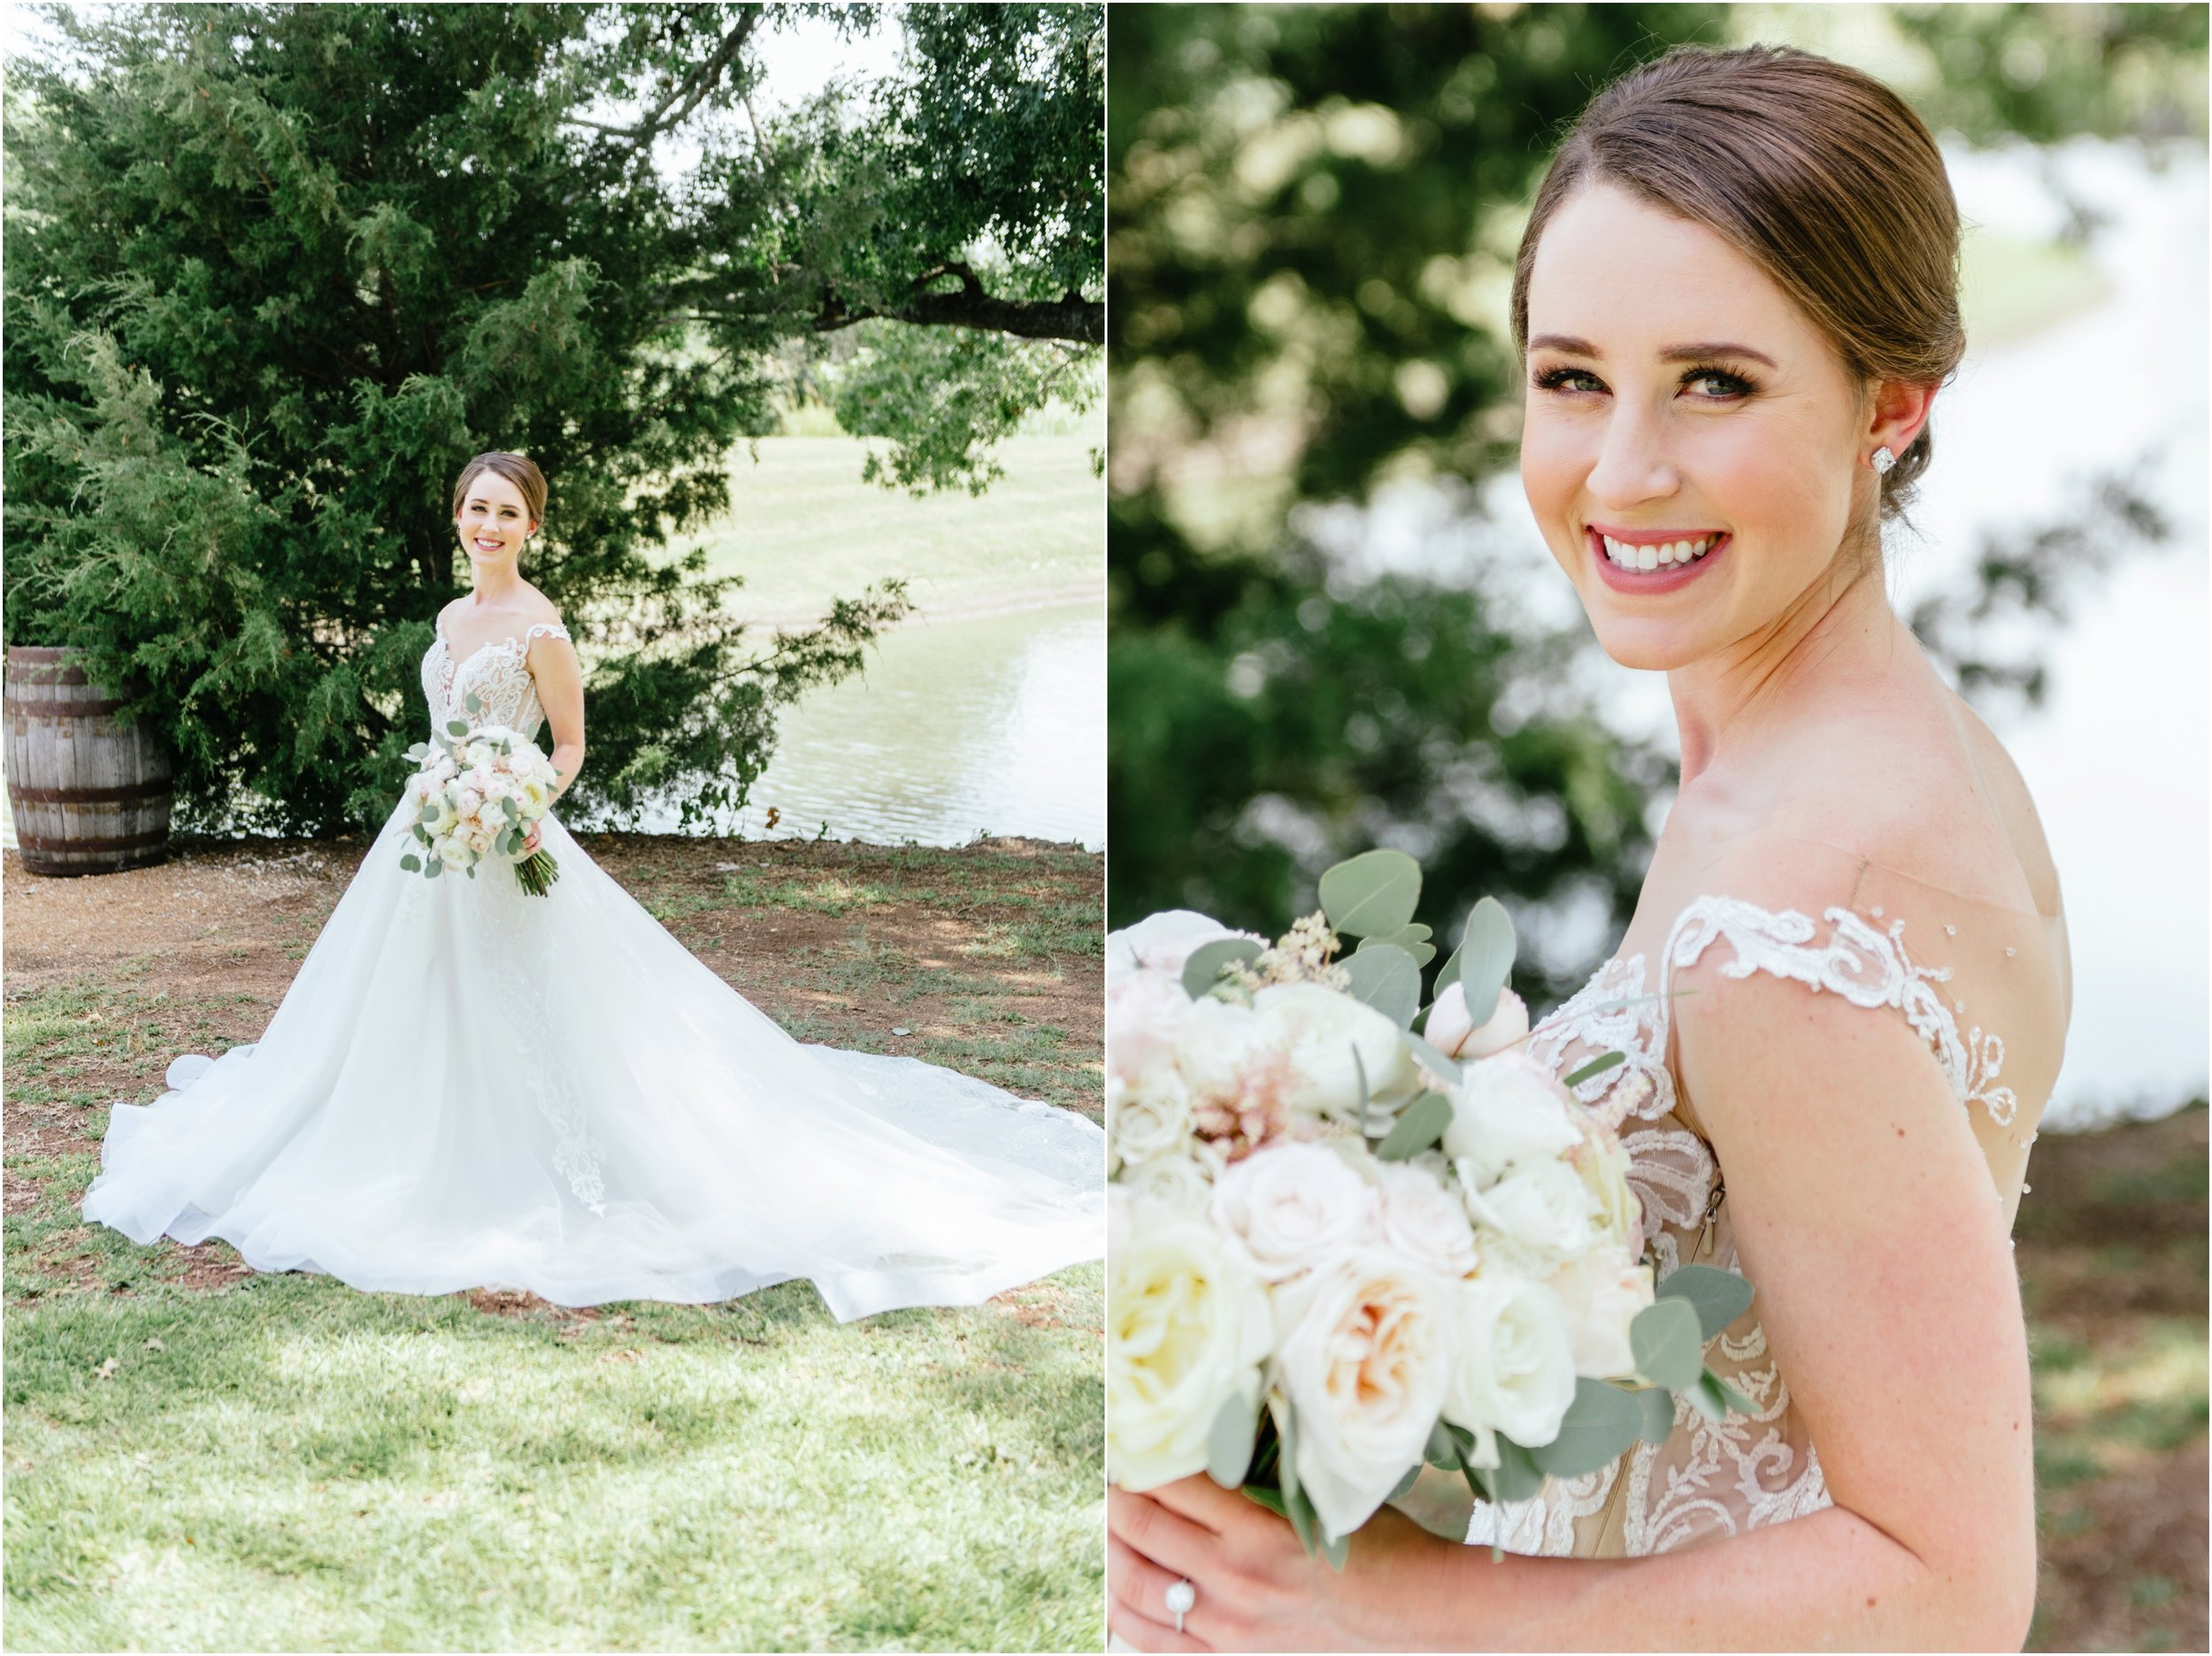 dallasweddingphotographer_fortworthweddingphotographer_texasweddingphotographer_mattandjulieweddings_whiterocklakewedding_KayleighClay_0013.jpg